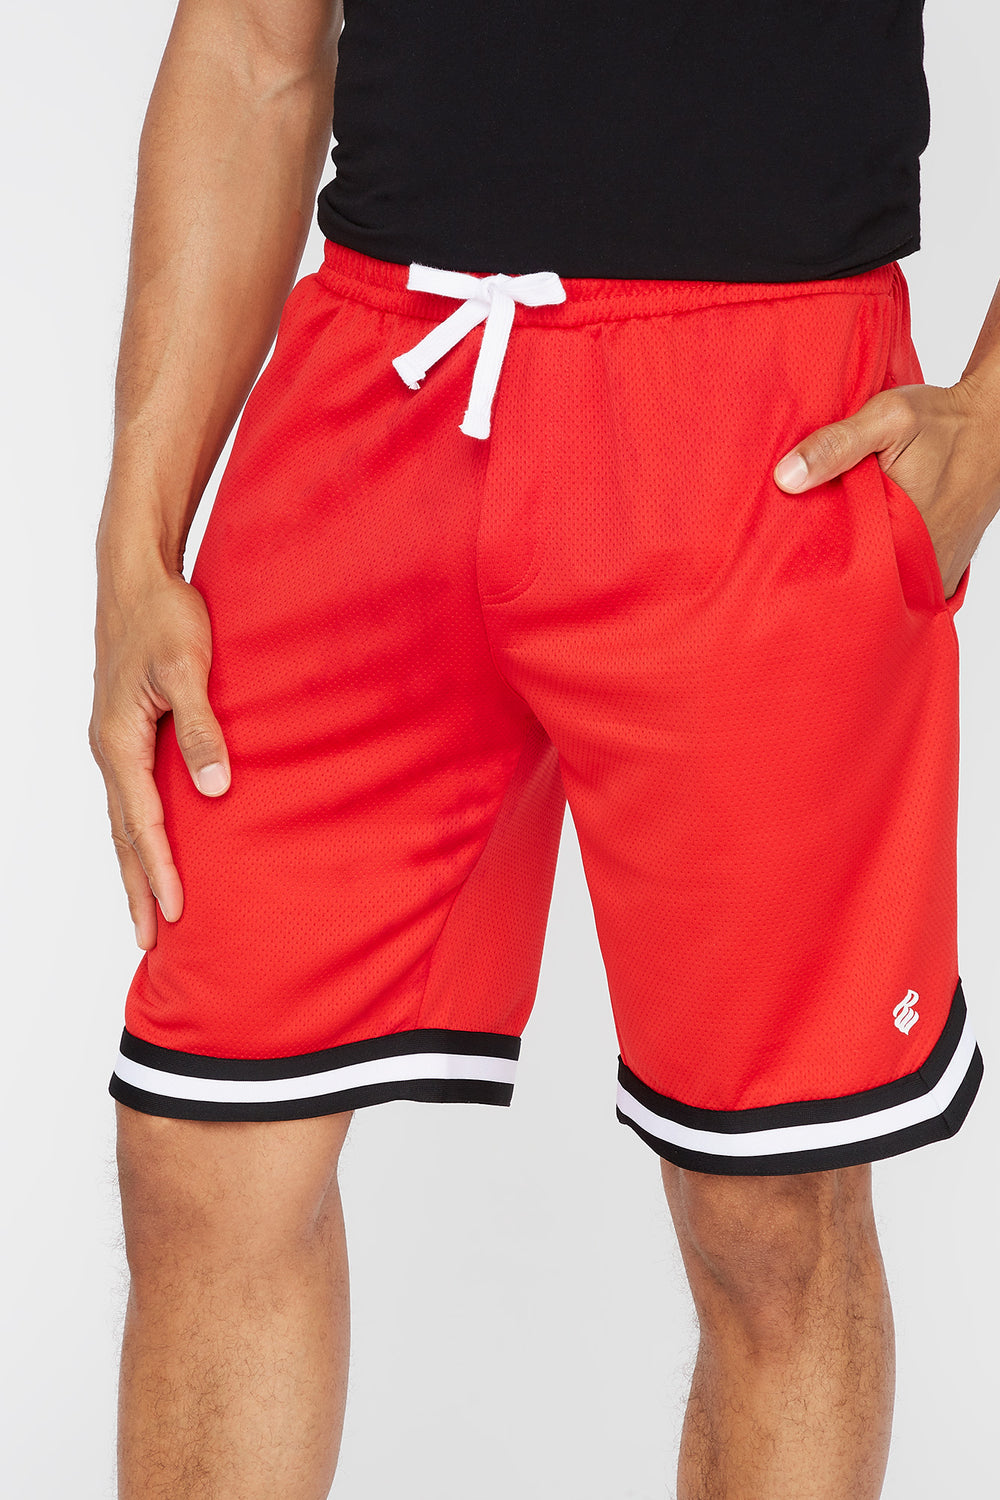 Rocawear Basketball Short Red